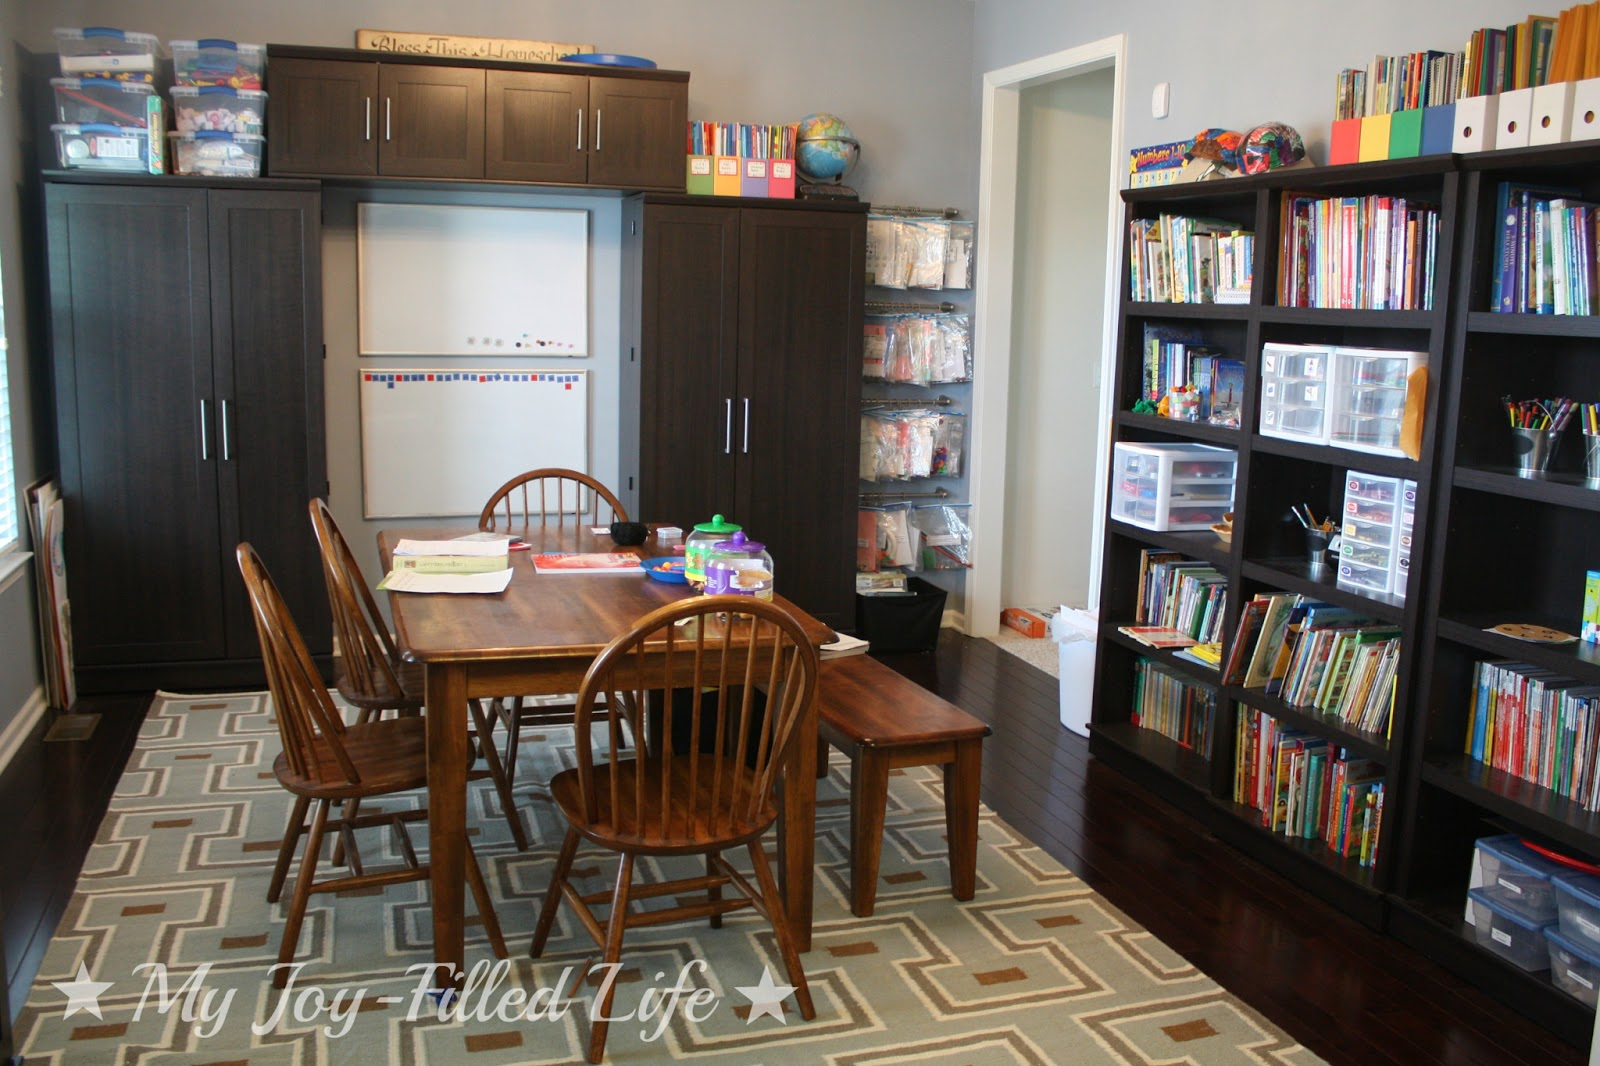 Home Classroom Design ~ Our homeschool room reveal finally my joy filled life